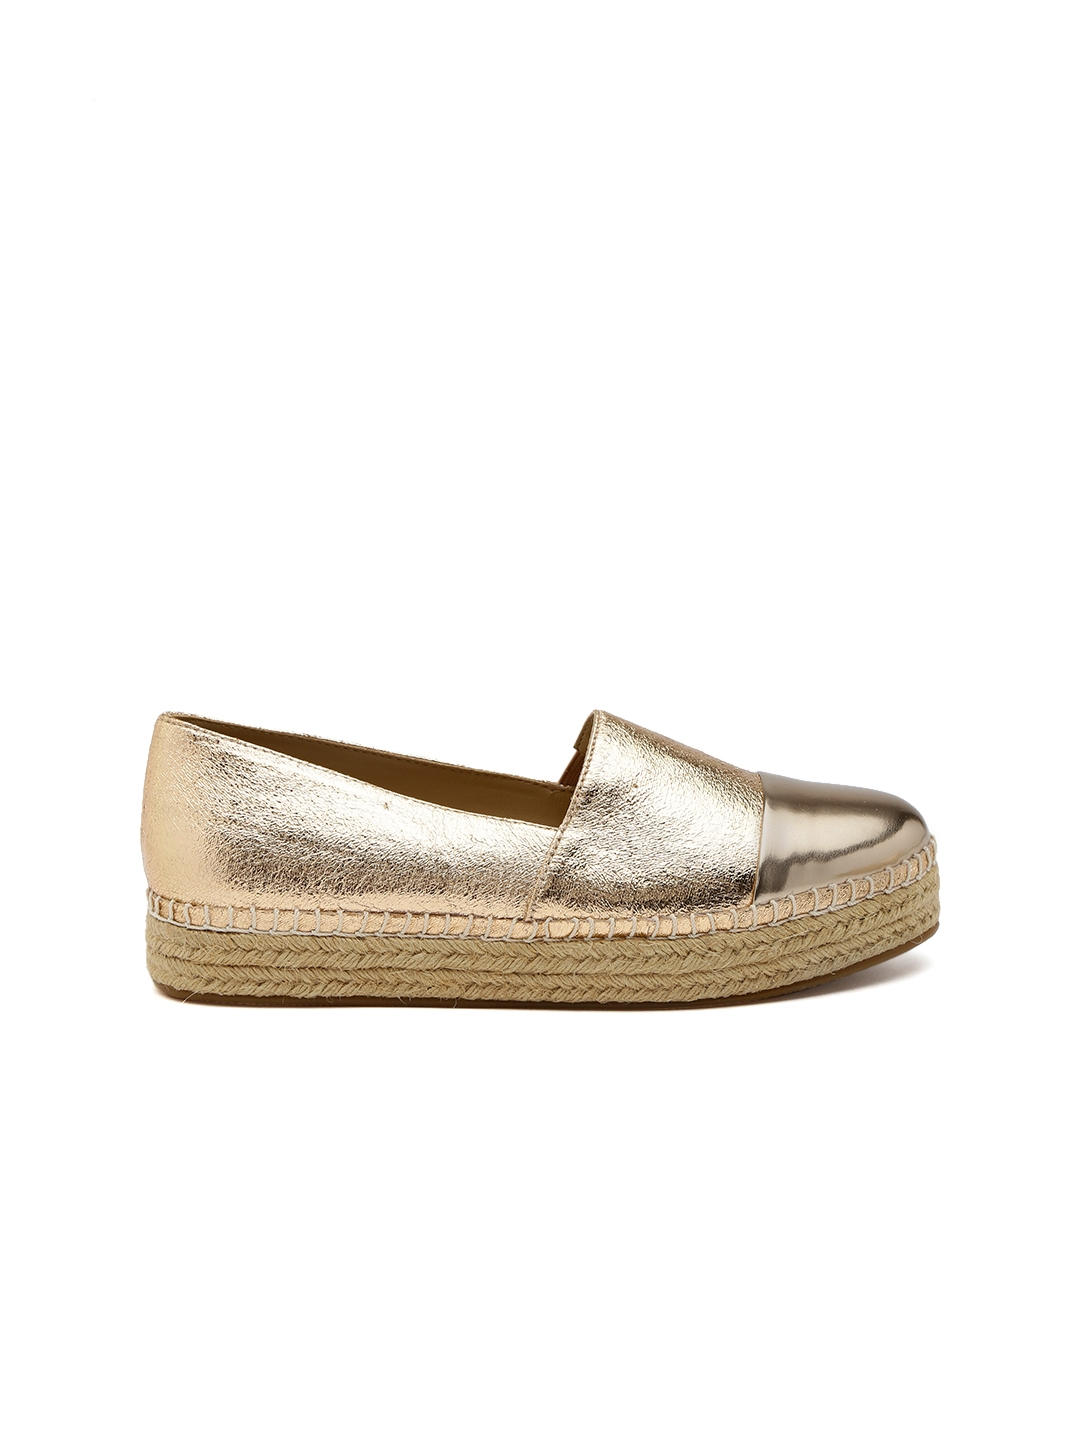 2cb47614f Buy Steve Madden Women Gold Toned Espadrilles - Casual Shoes for ...